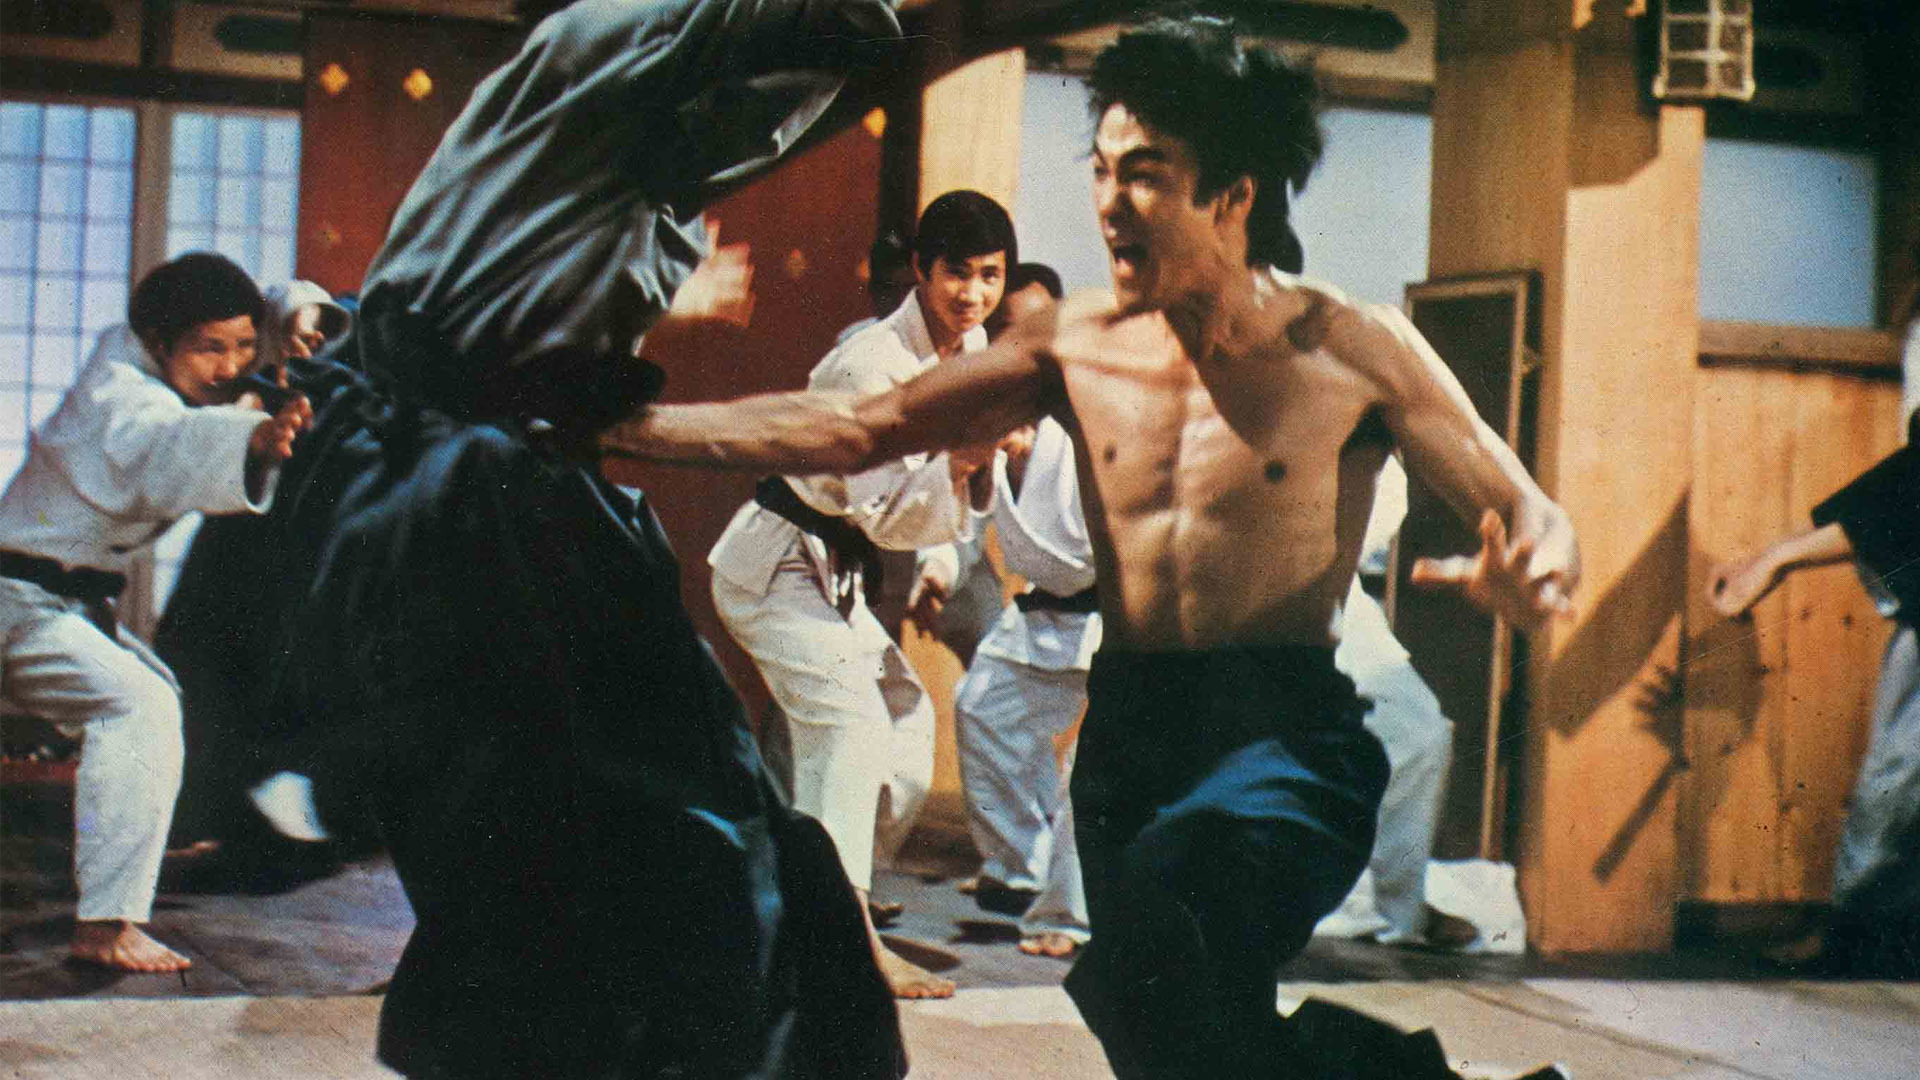 a history of the film genre martial arts The fighting is pretty tremendous, and this film is of the school of wire work (that's acrobatics and flight by use of barely visible wires, and a staple of the martial arts movie genre) where true martial artists can perform superhuman feats.